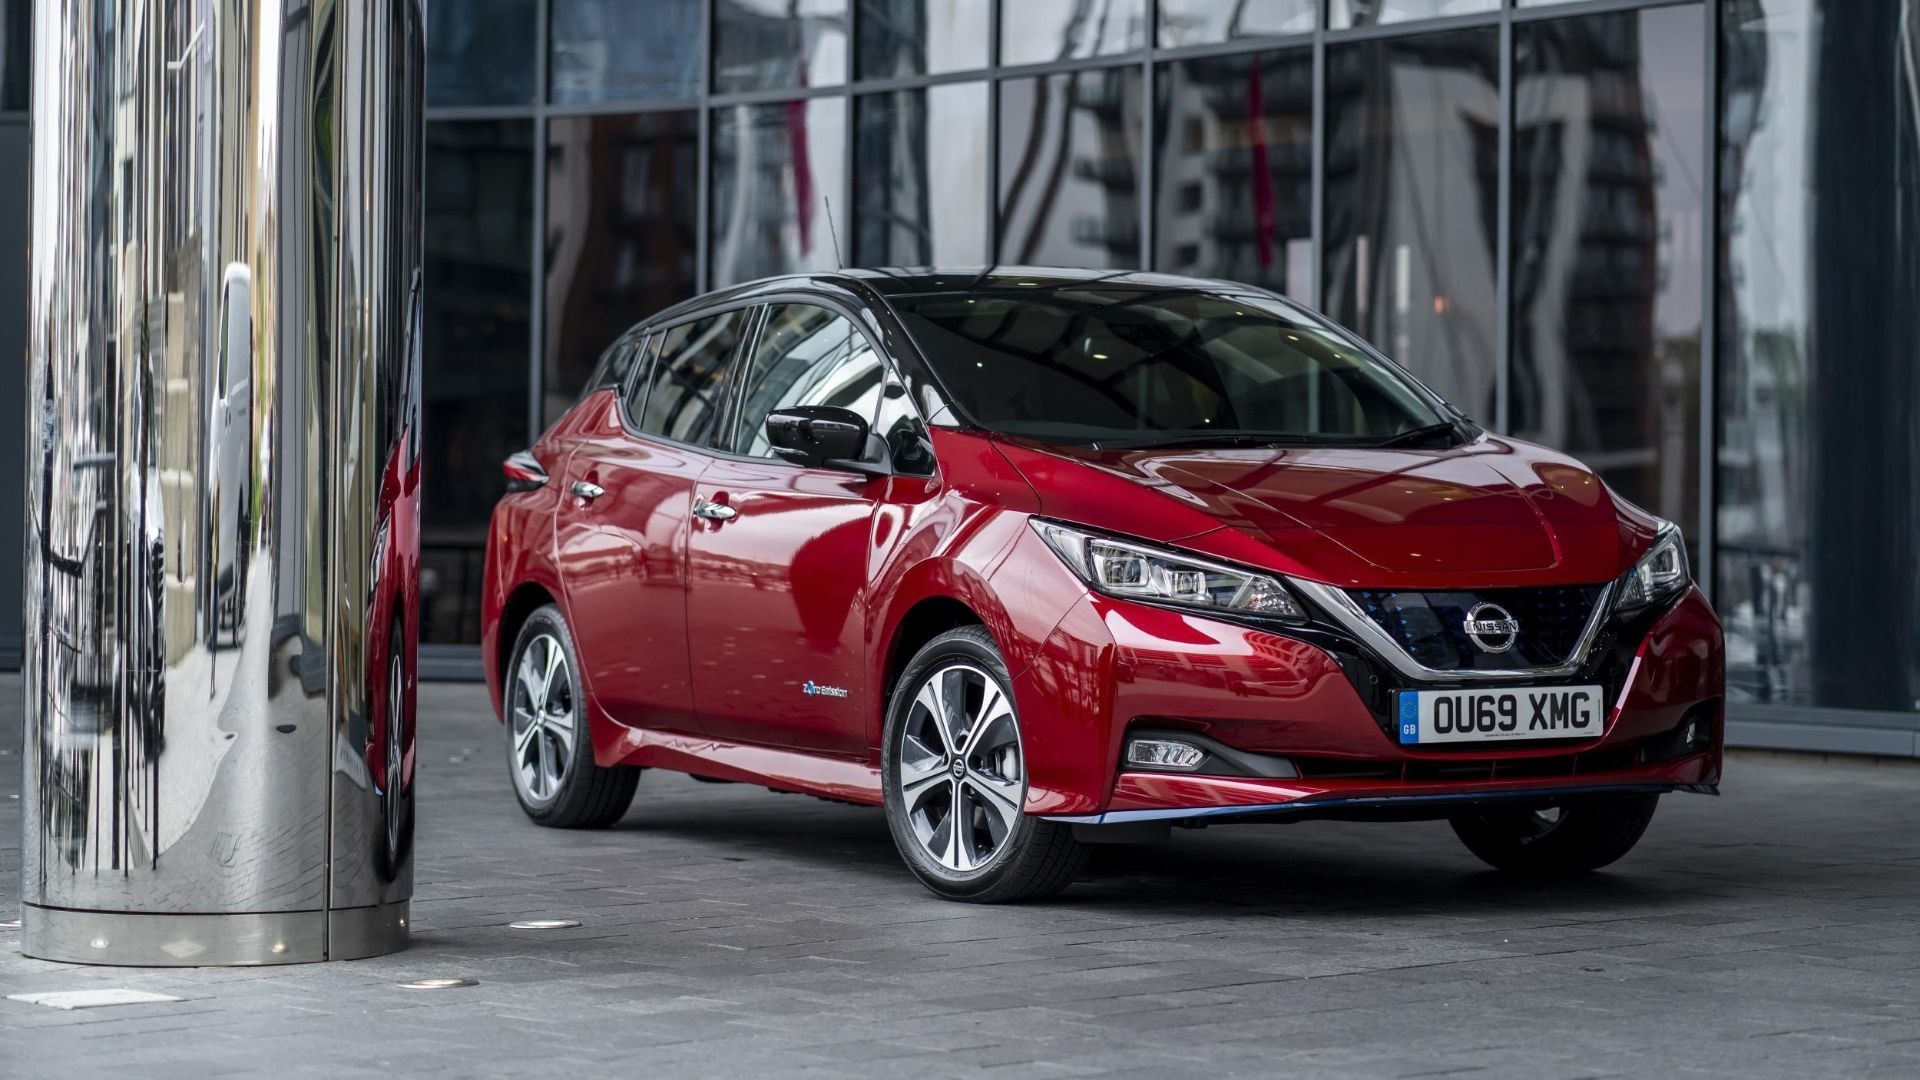 Leasing A Car Through Uber >> Nissan partners with Uber to electrify London fleet | Motoring Research